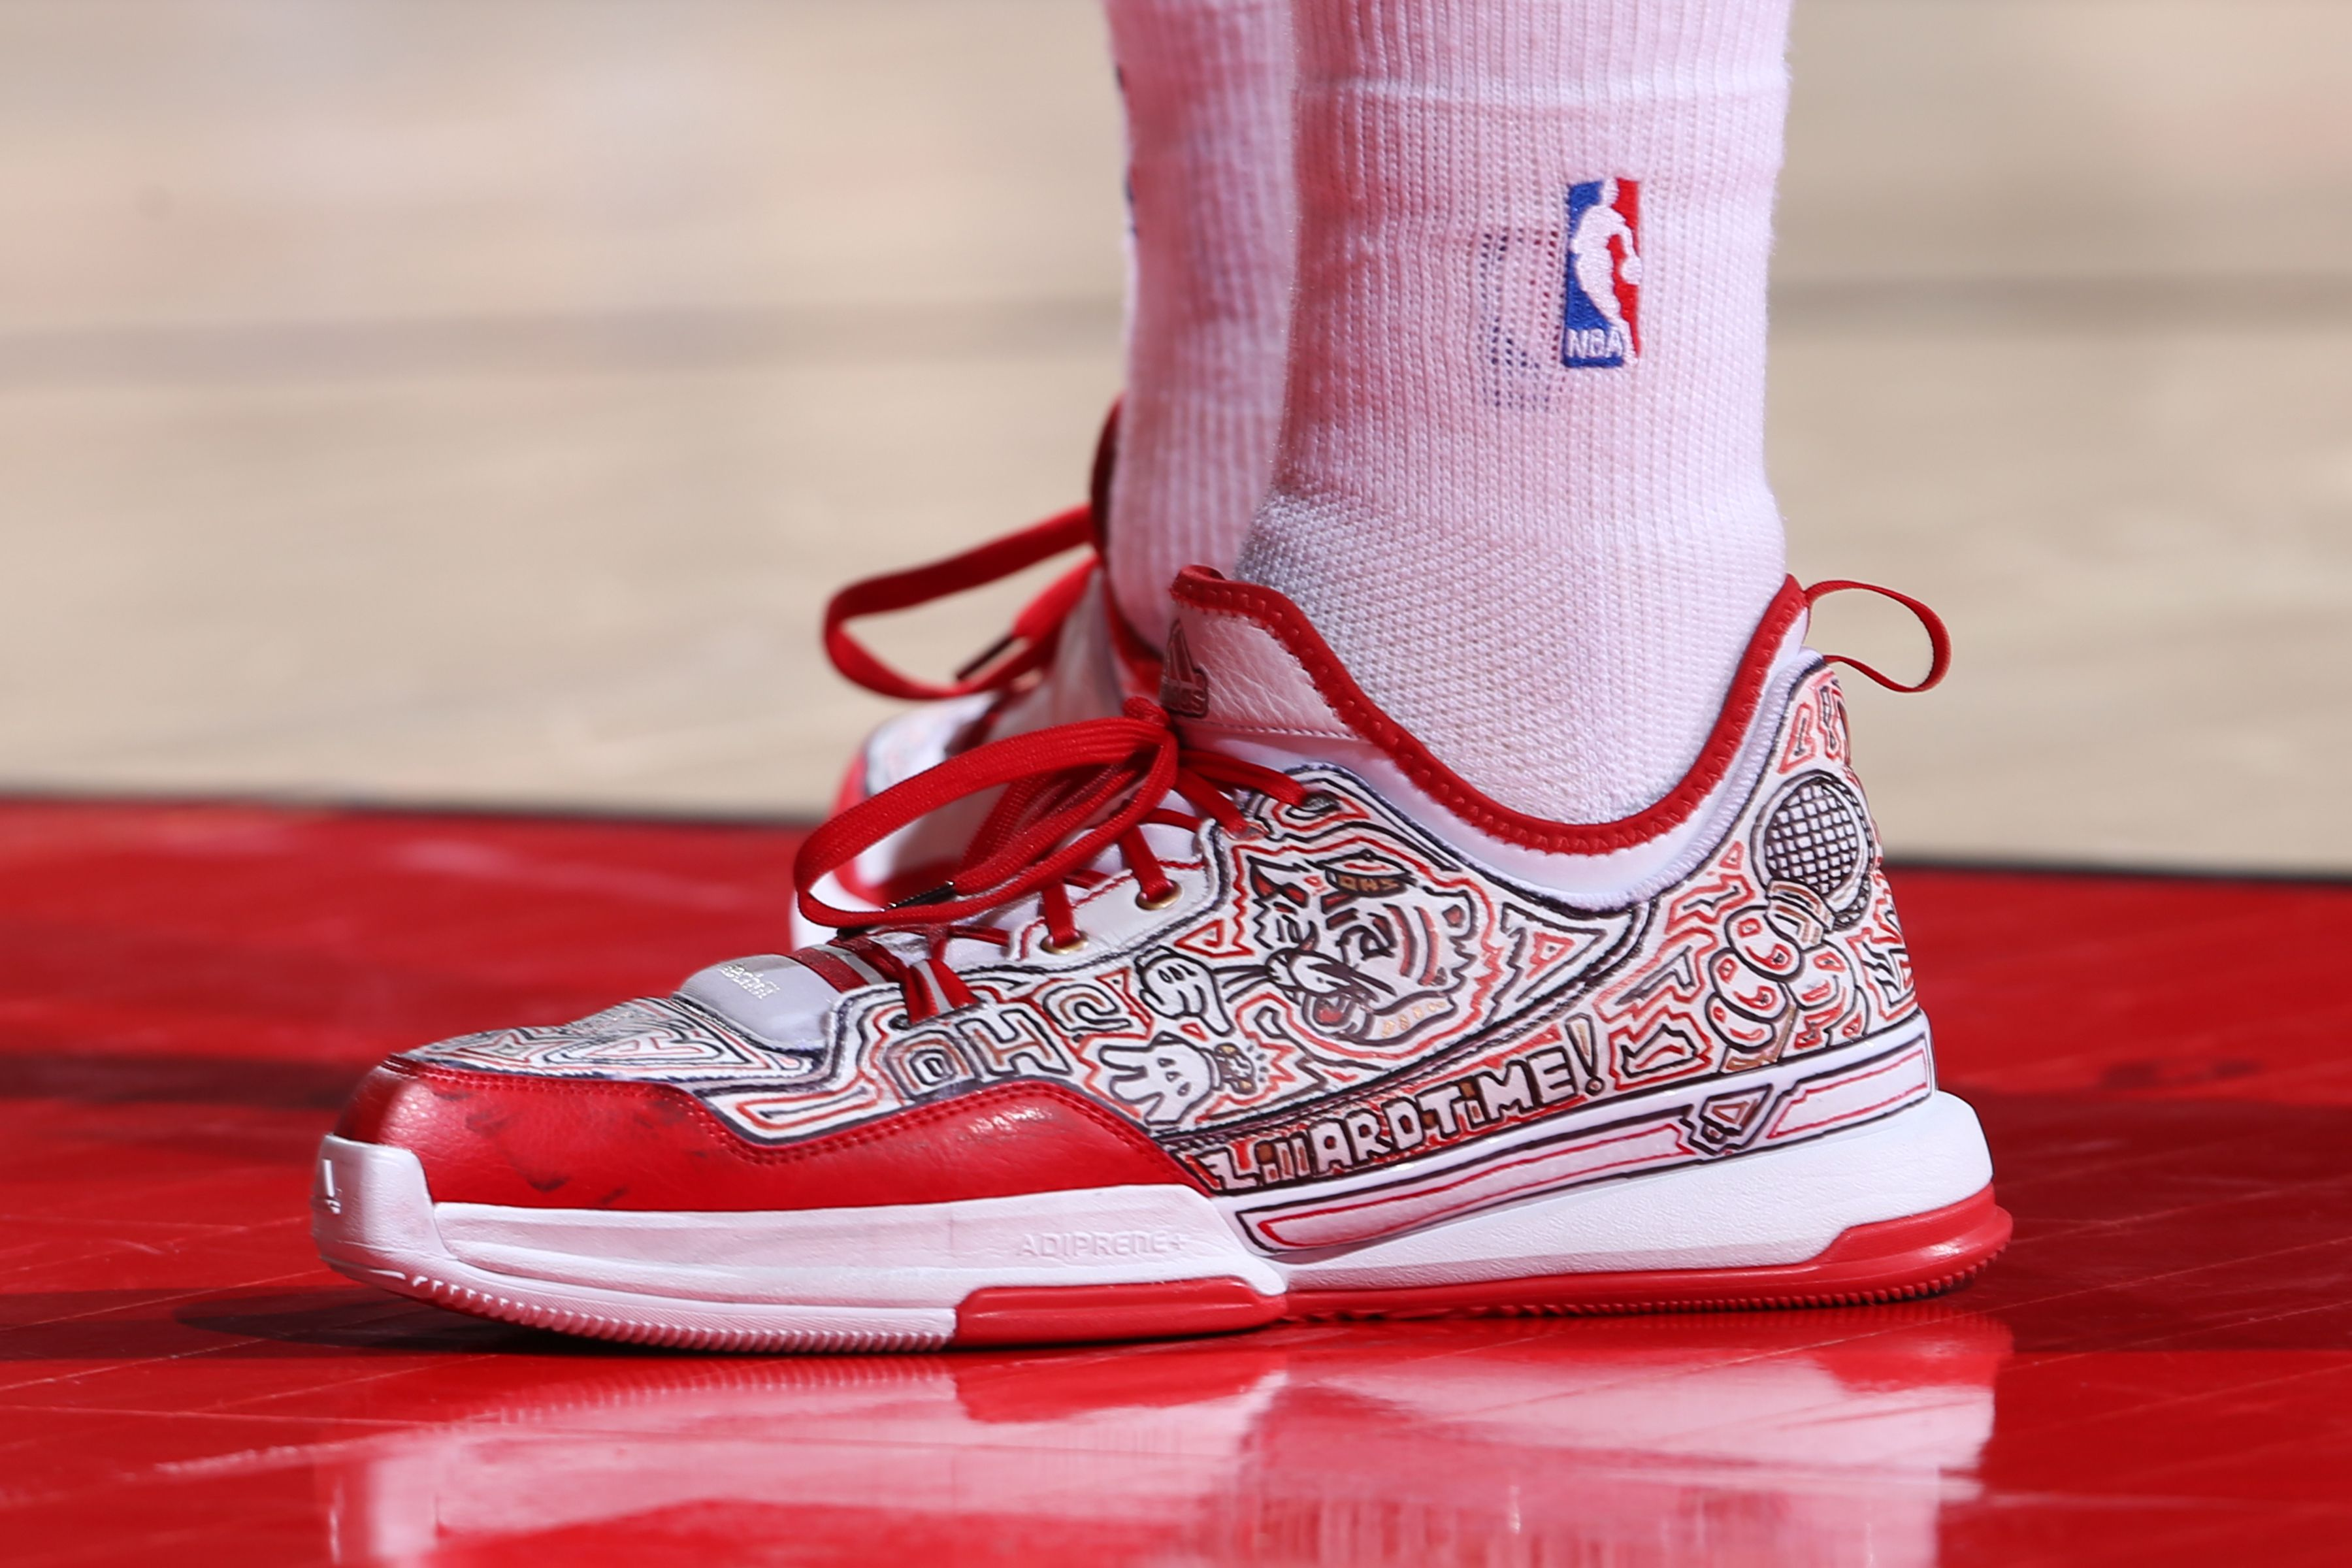 wholesale dealer 60215 cf6d7 Custom Adidas D. Lillard 1 worn by Damian Lillard in Game 4 of   BLAZERSvGRIZZLIES. He finished the game with 32 points 7 assists and a   Blazers Victory!